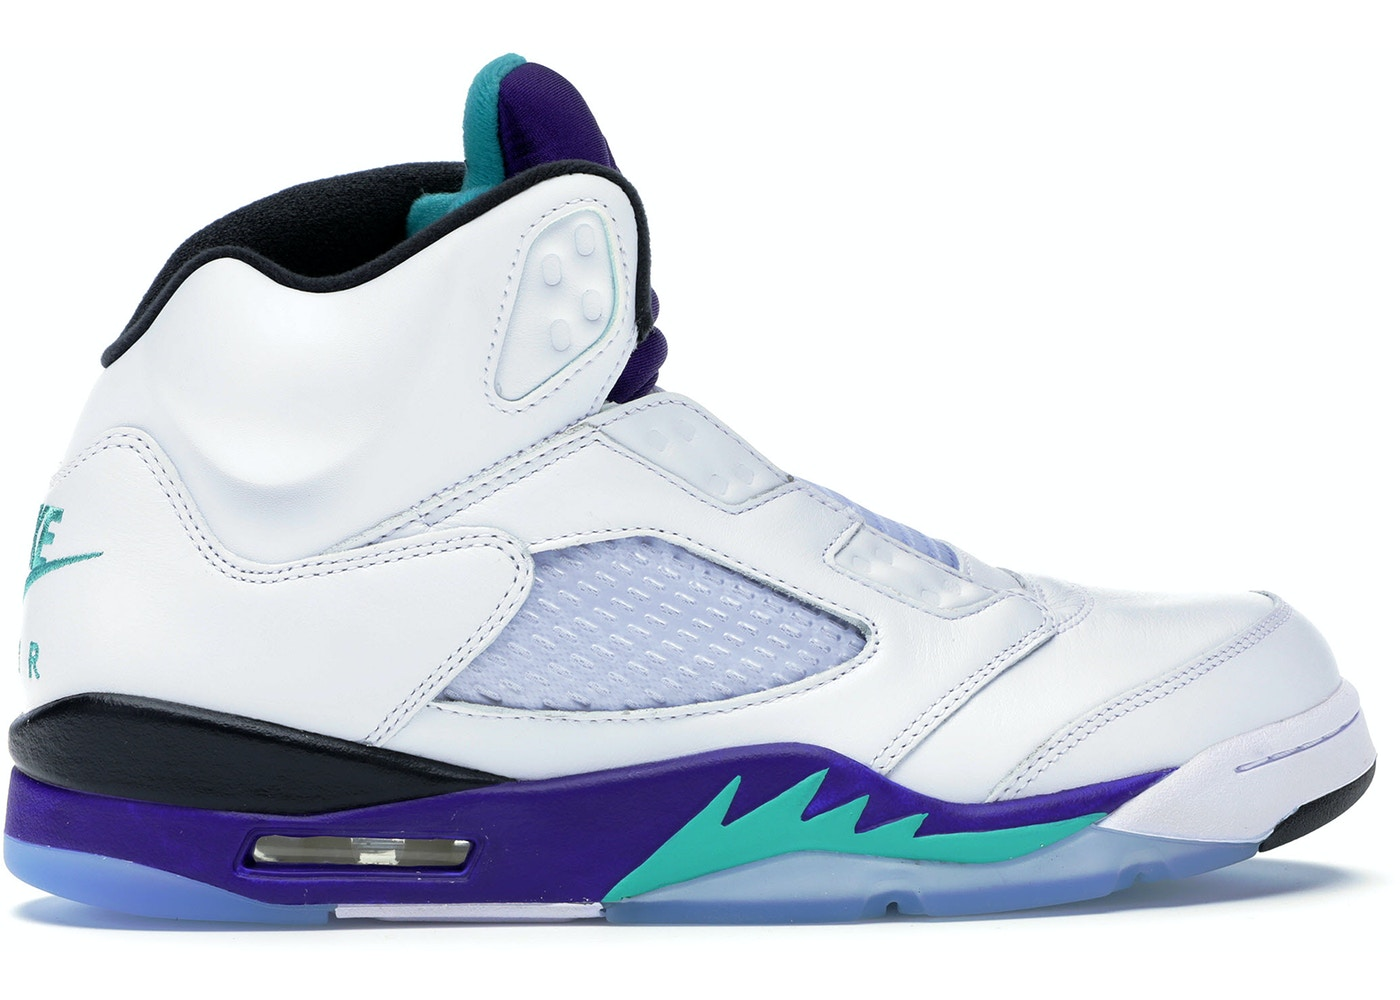 c974726db786c Jordan 5 Retro Grape Fresh Prince - AV3919-135